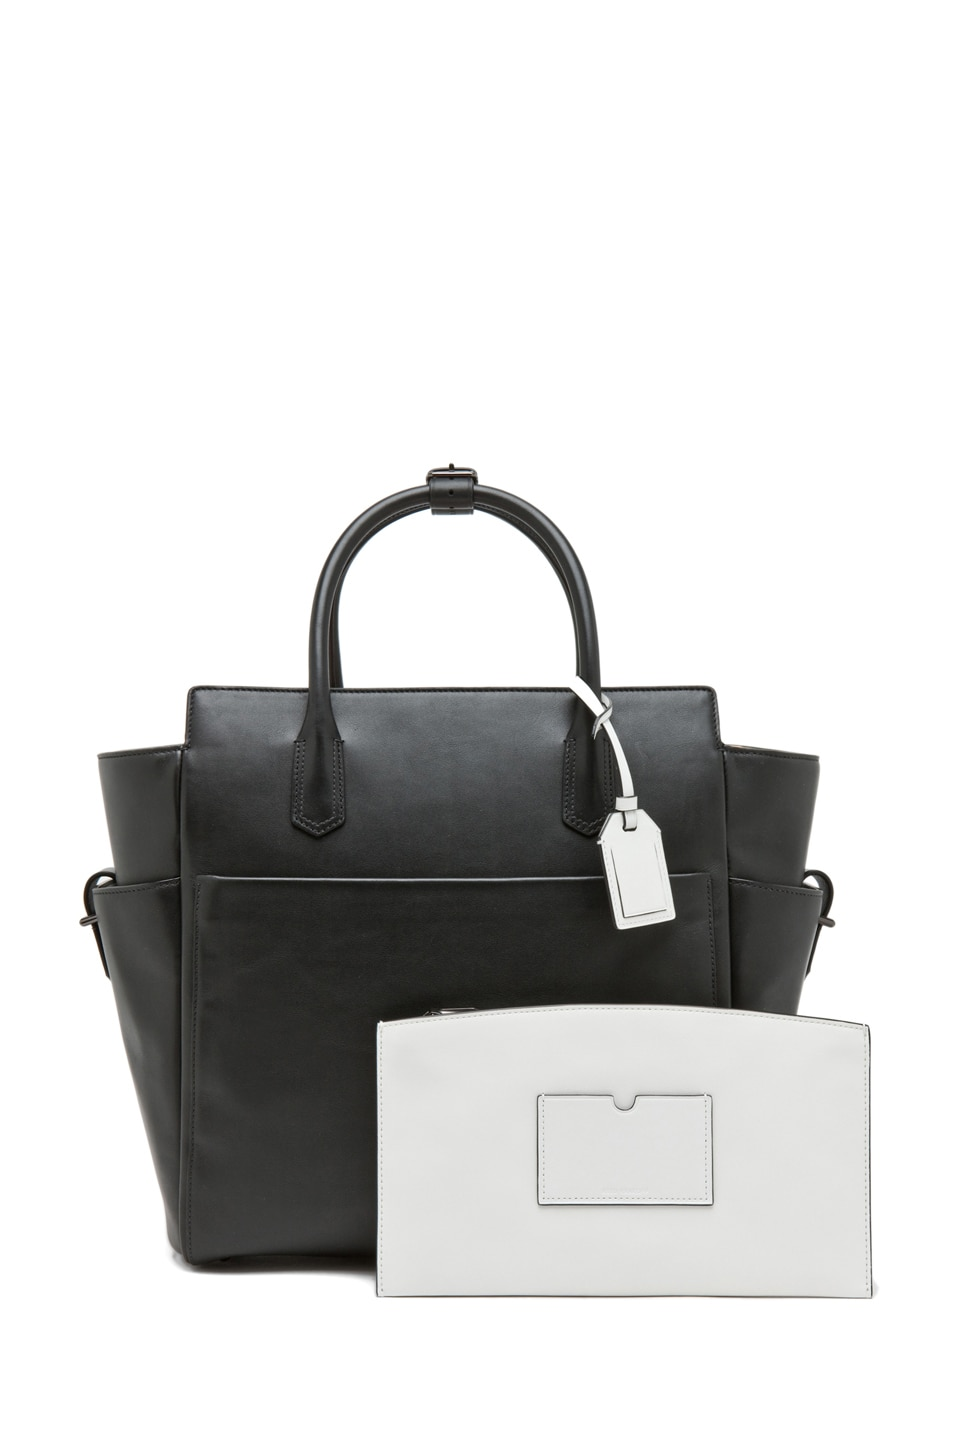 Image 4 of Reed Krakoff Atlantique in Black/White Multi